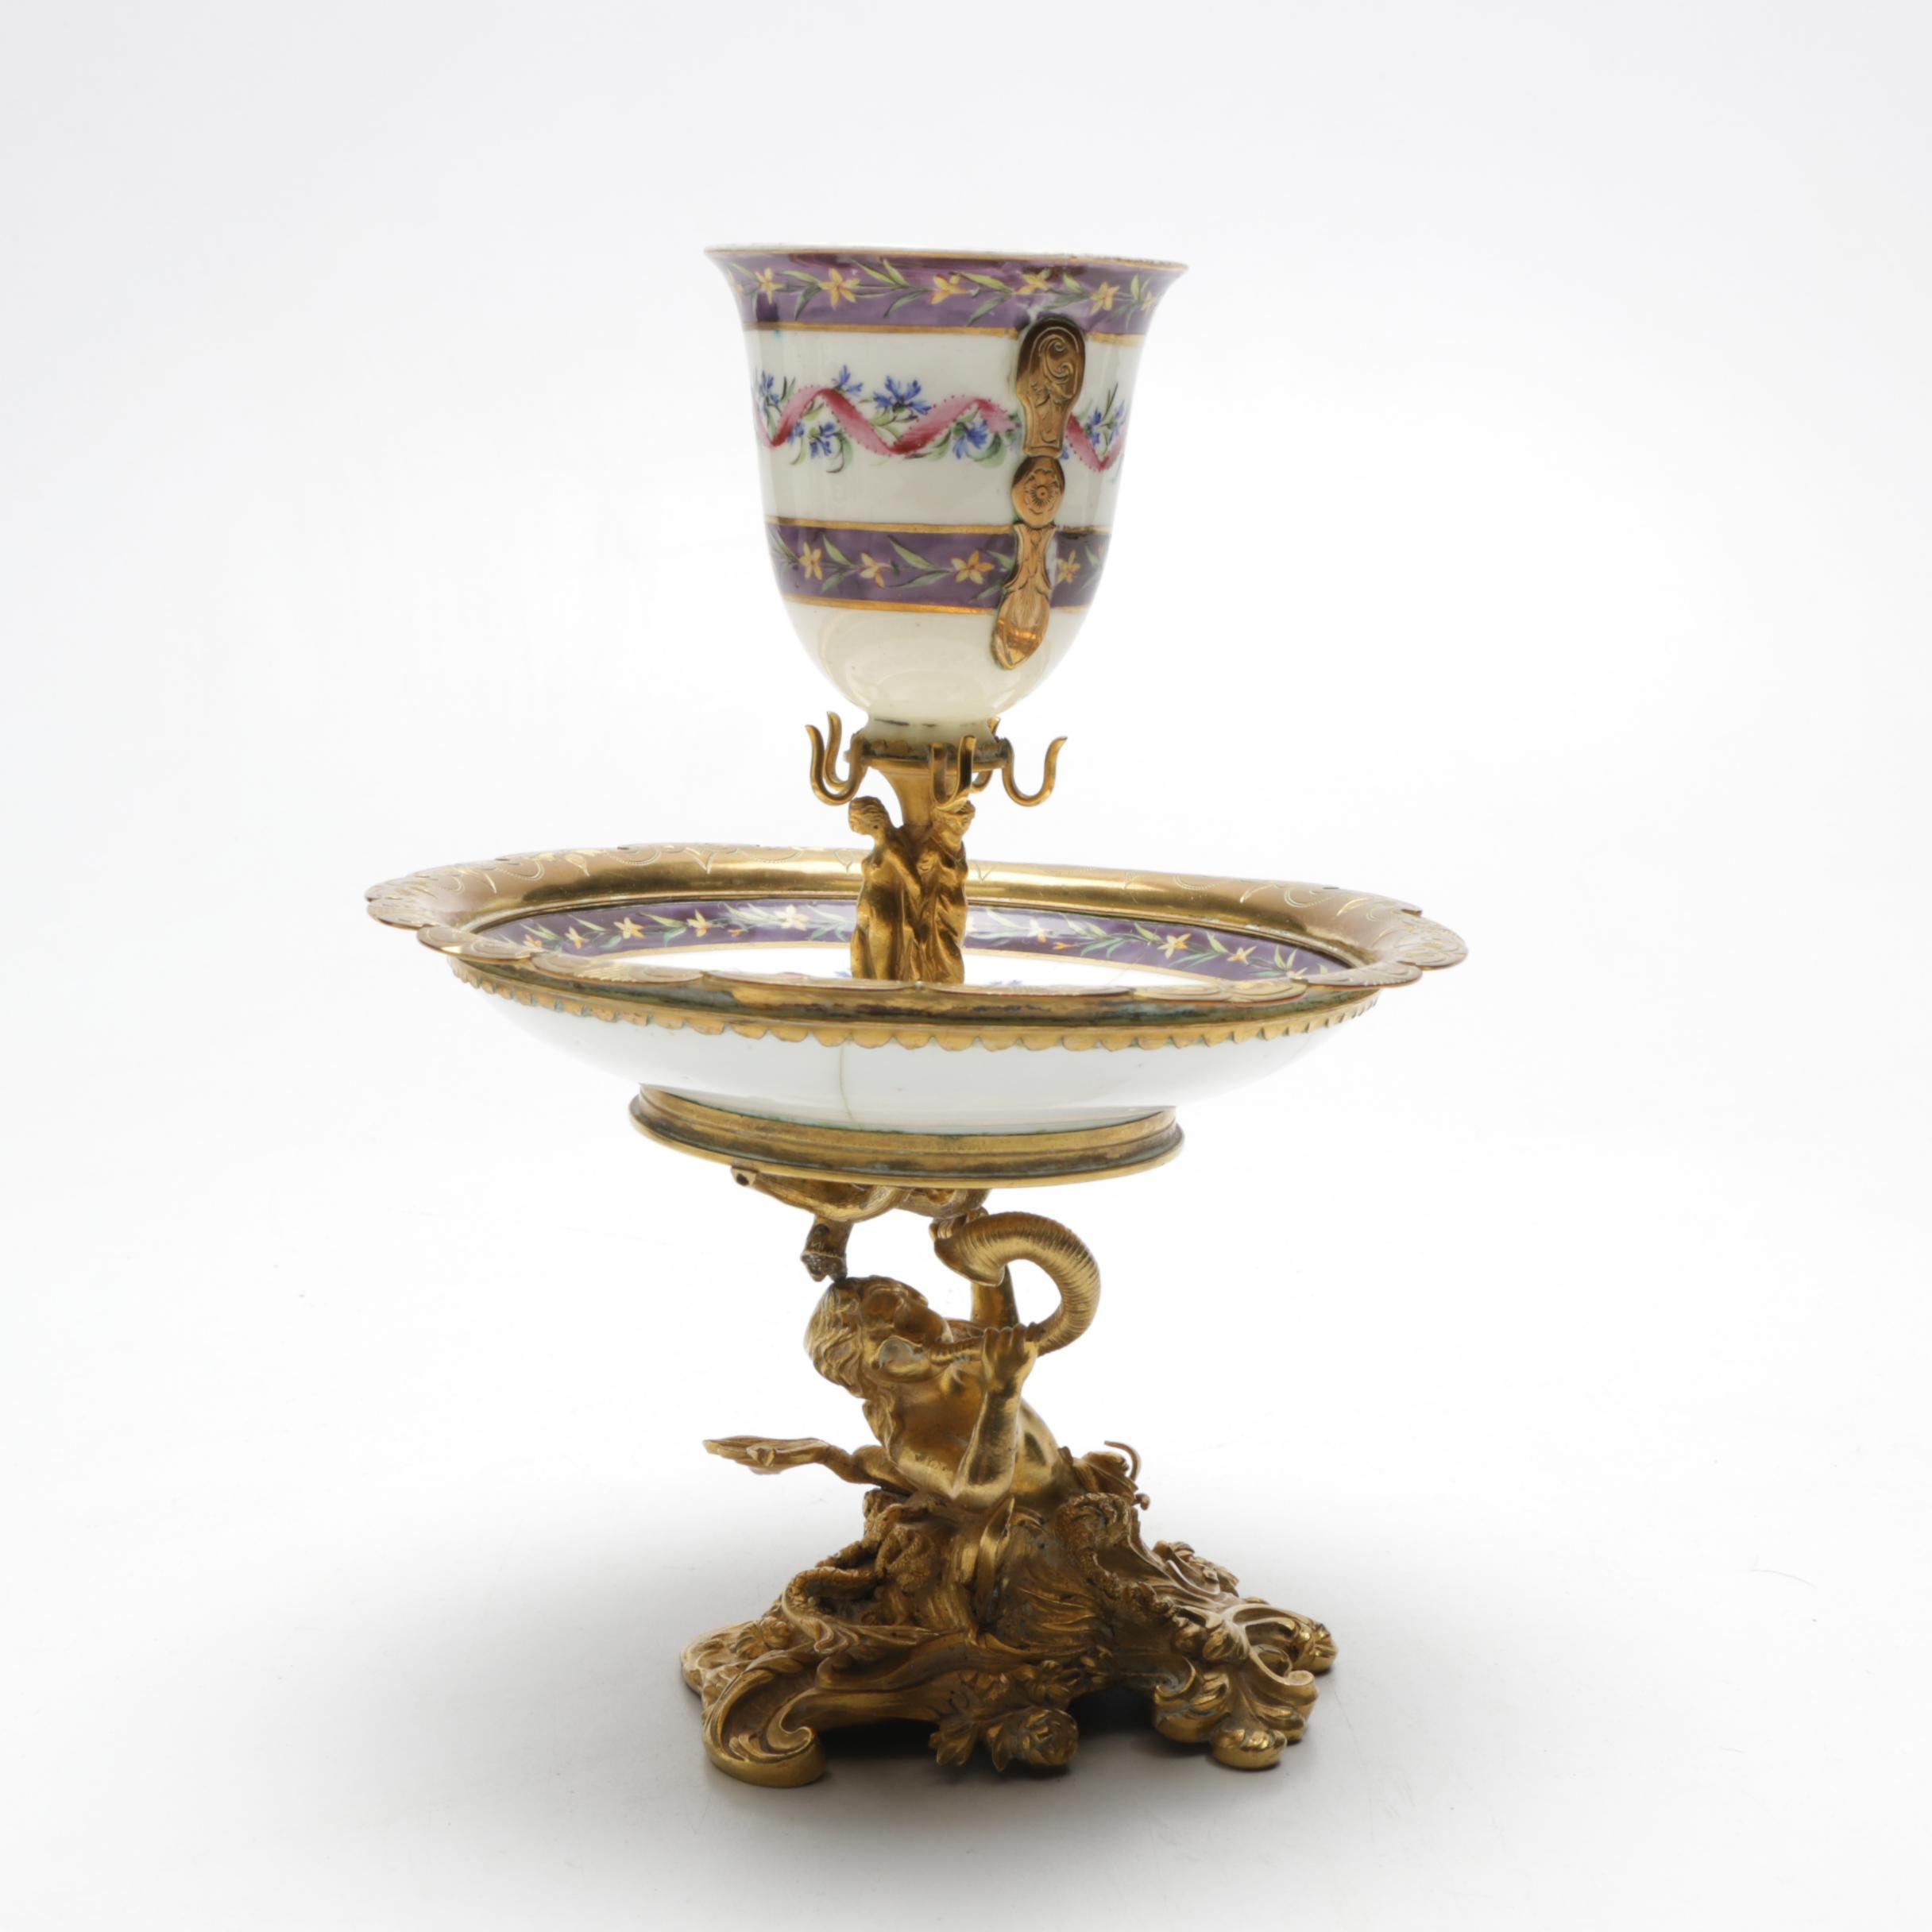 Cast Bronze and Porcelain Figural Tazza Epergne, 19th Century